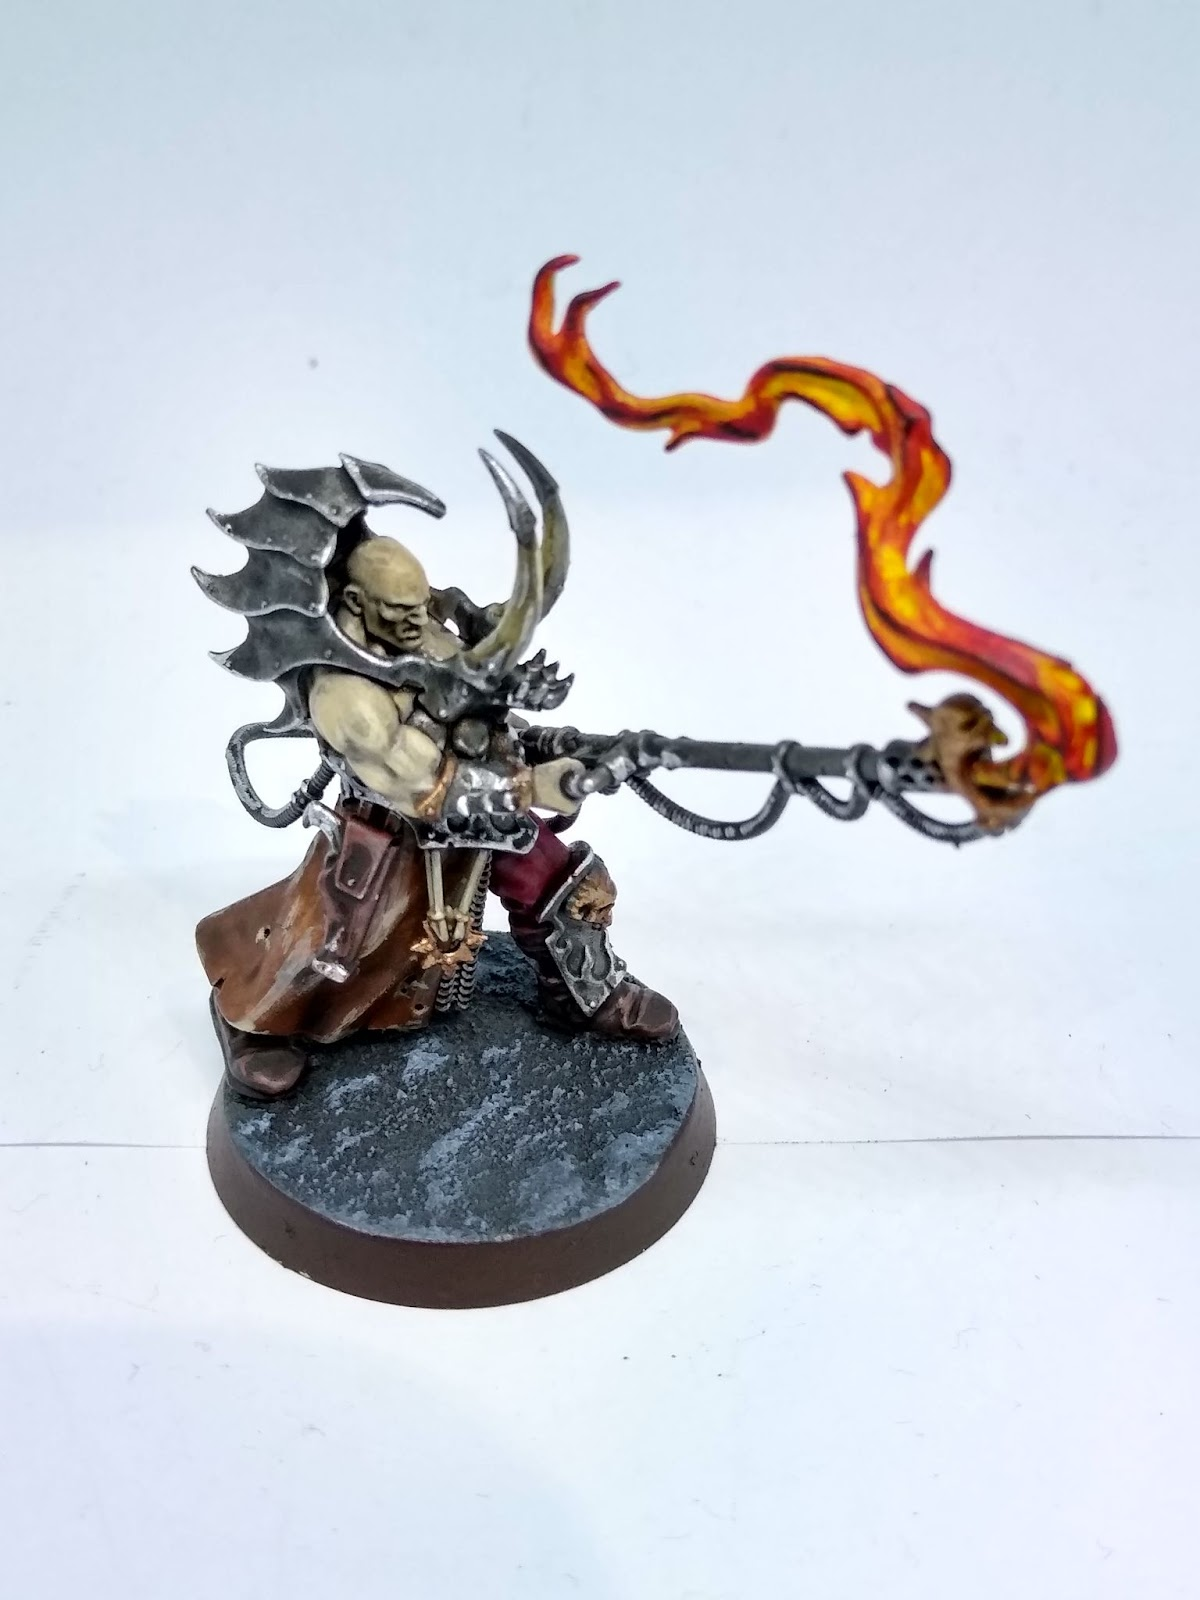 A cultist firebrand model - a burly man in horned armour, wielding a flamethrower with a daemonic face.